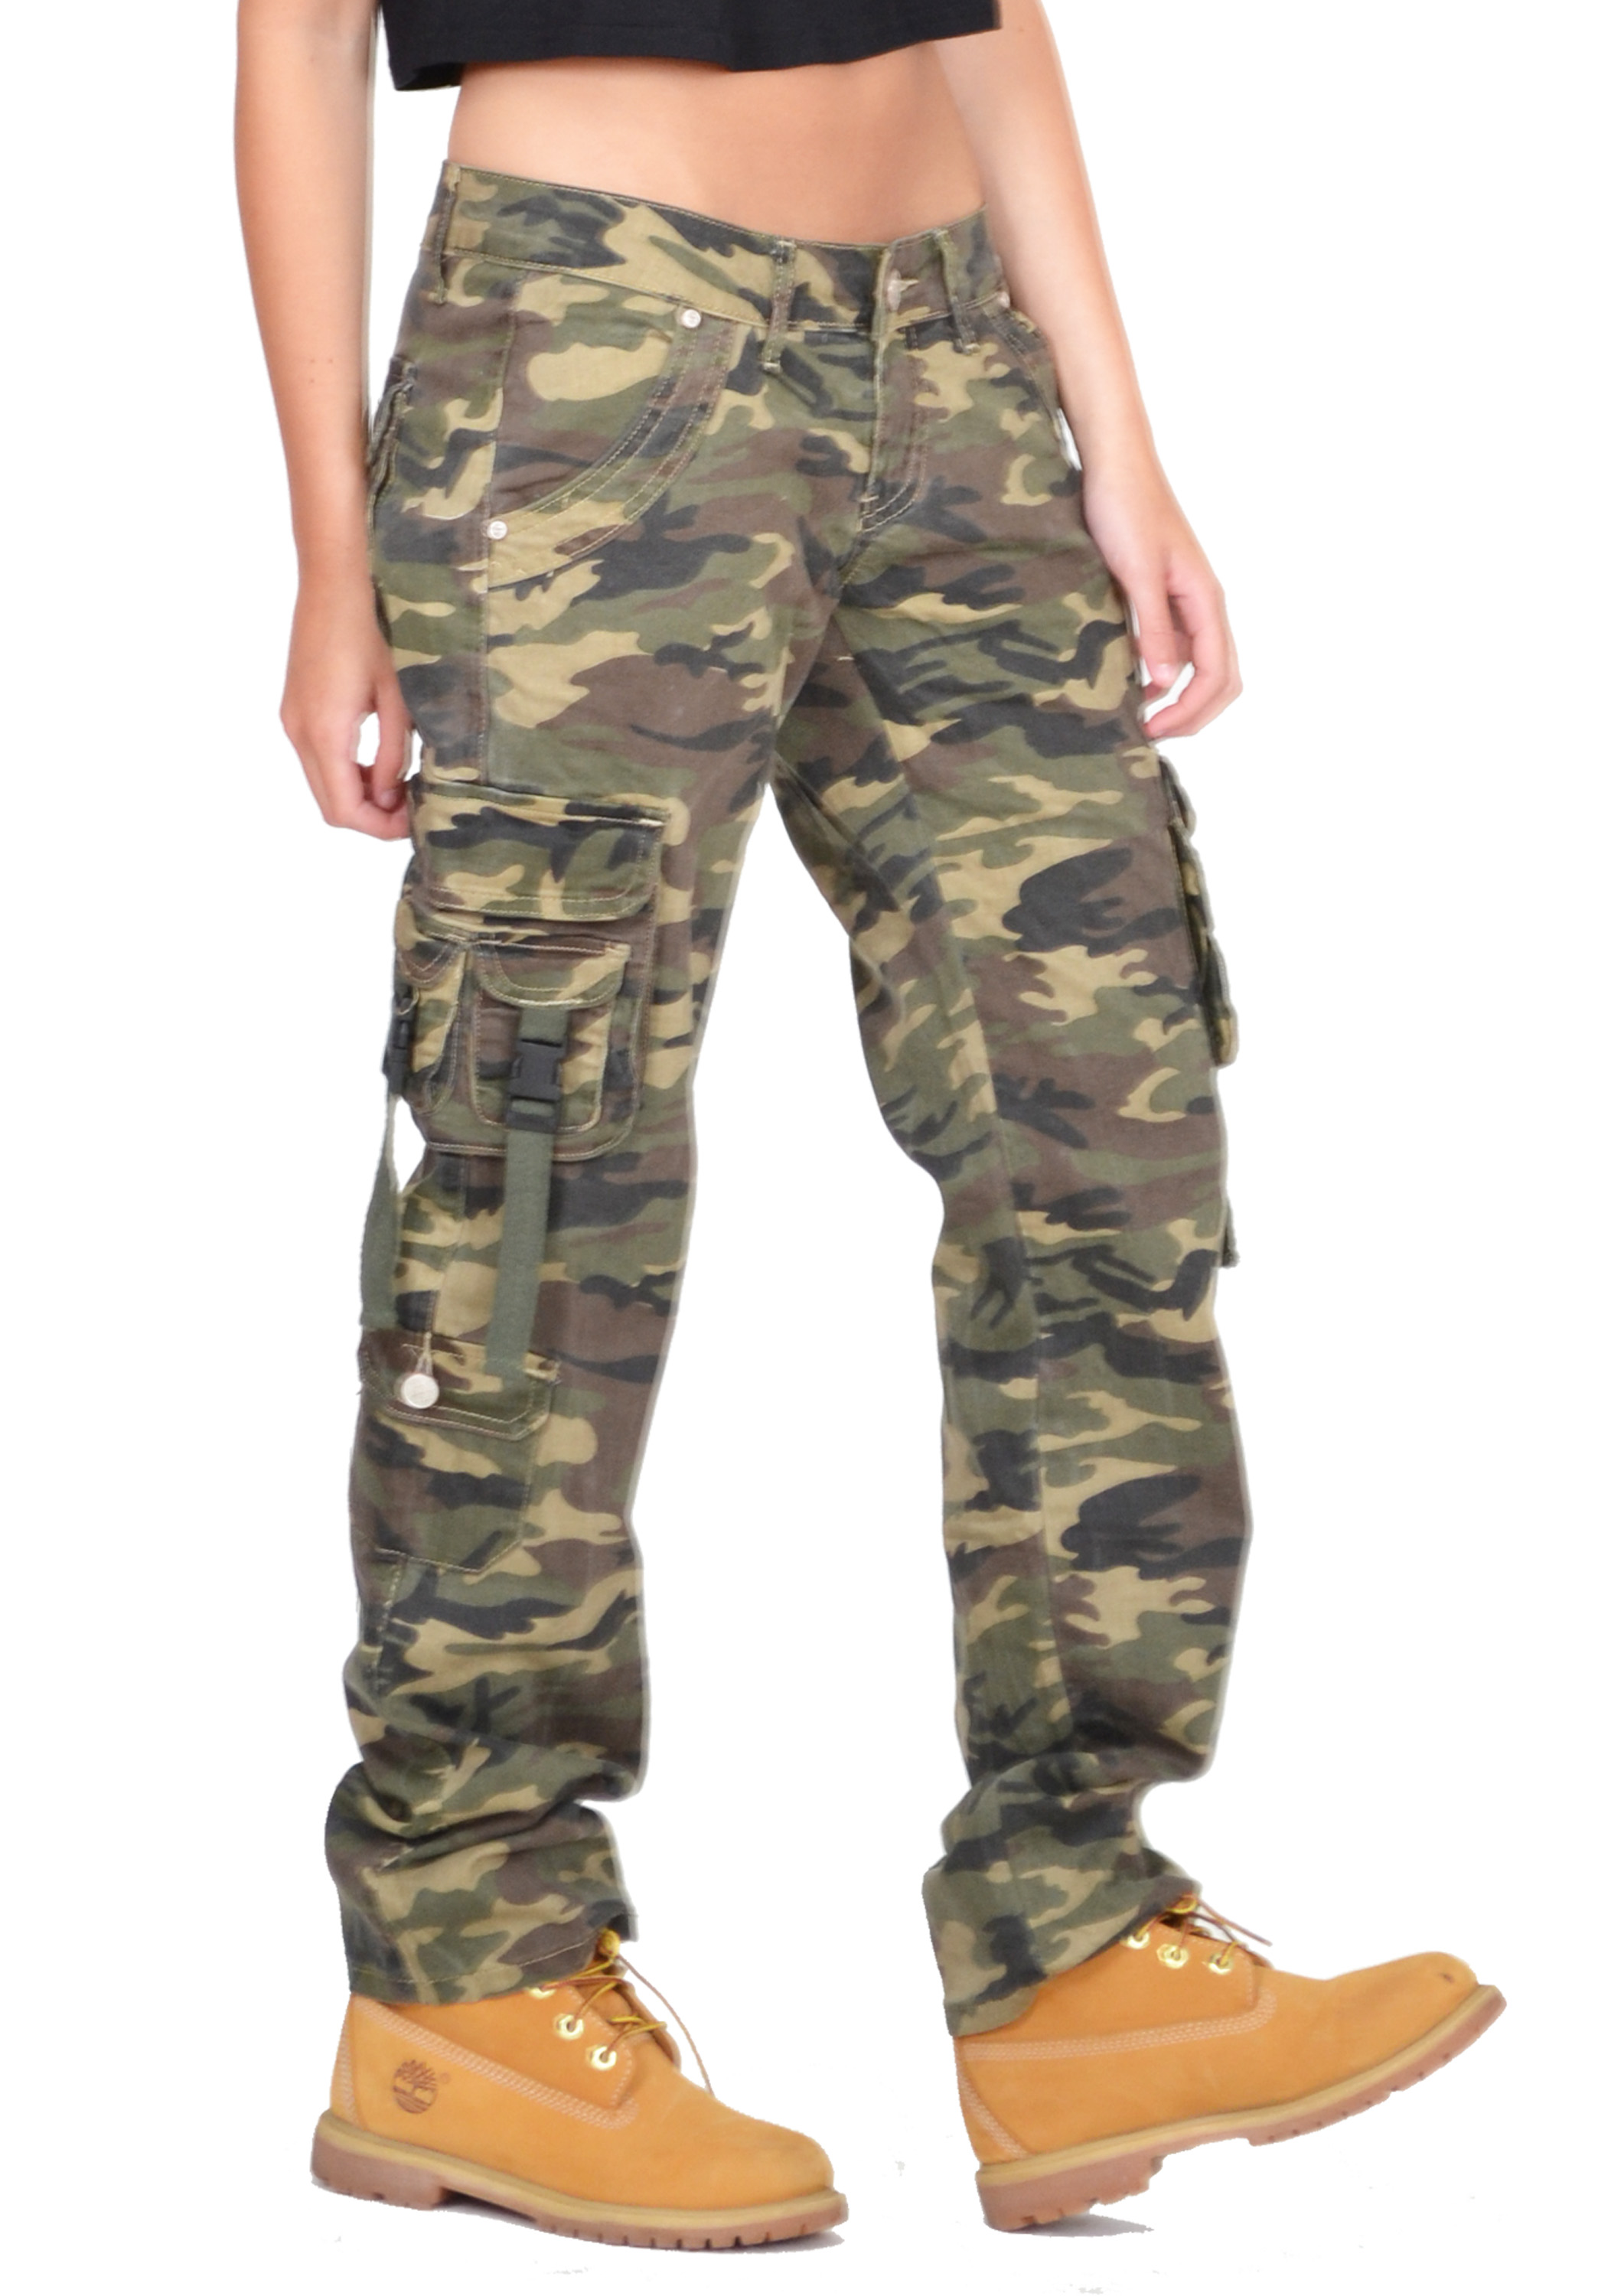 Stuccu: Best Deals on army trousers for women. Up To 70% offBest Offers · Exclusive Deals · Lowest Prices · Compare Prices.